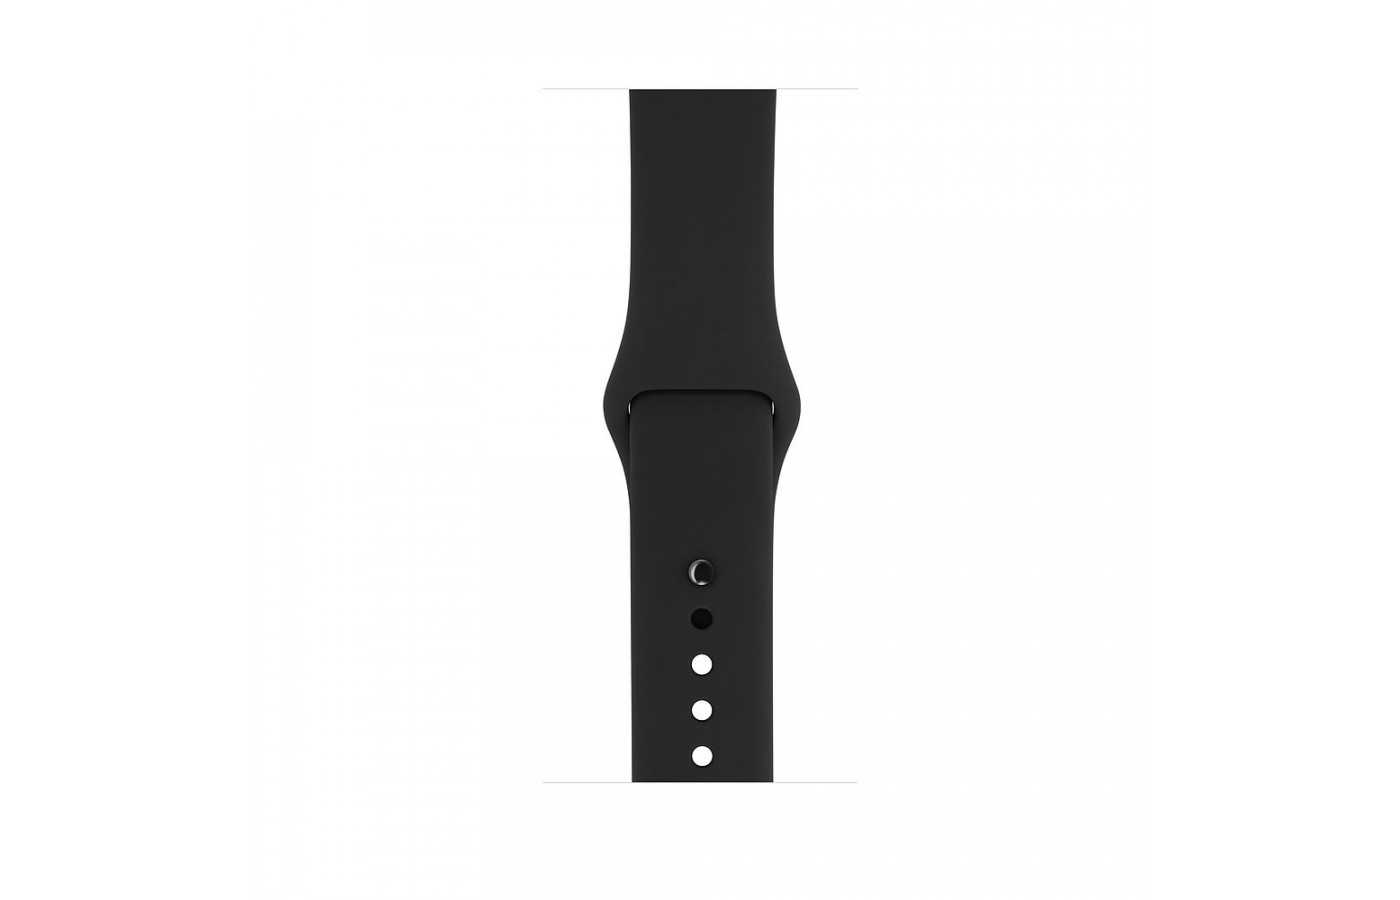 Apple Watch Series 2 Strap